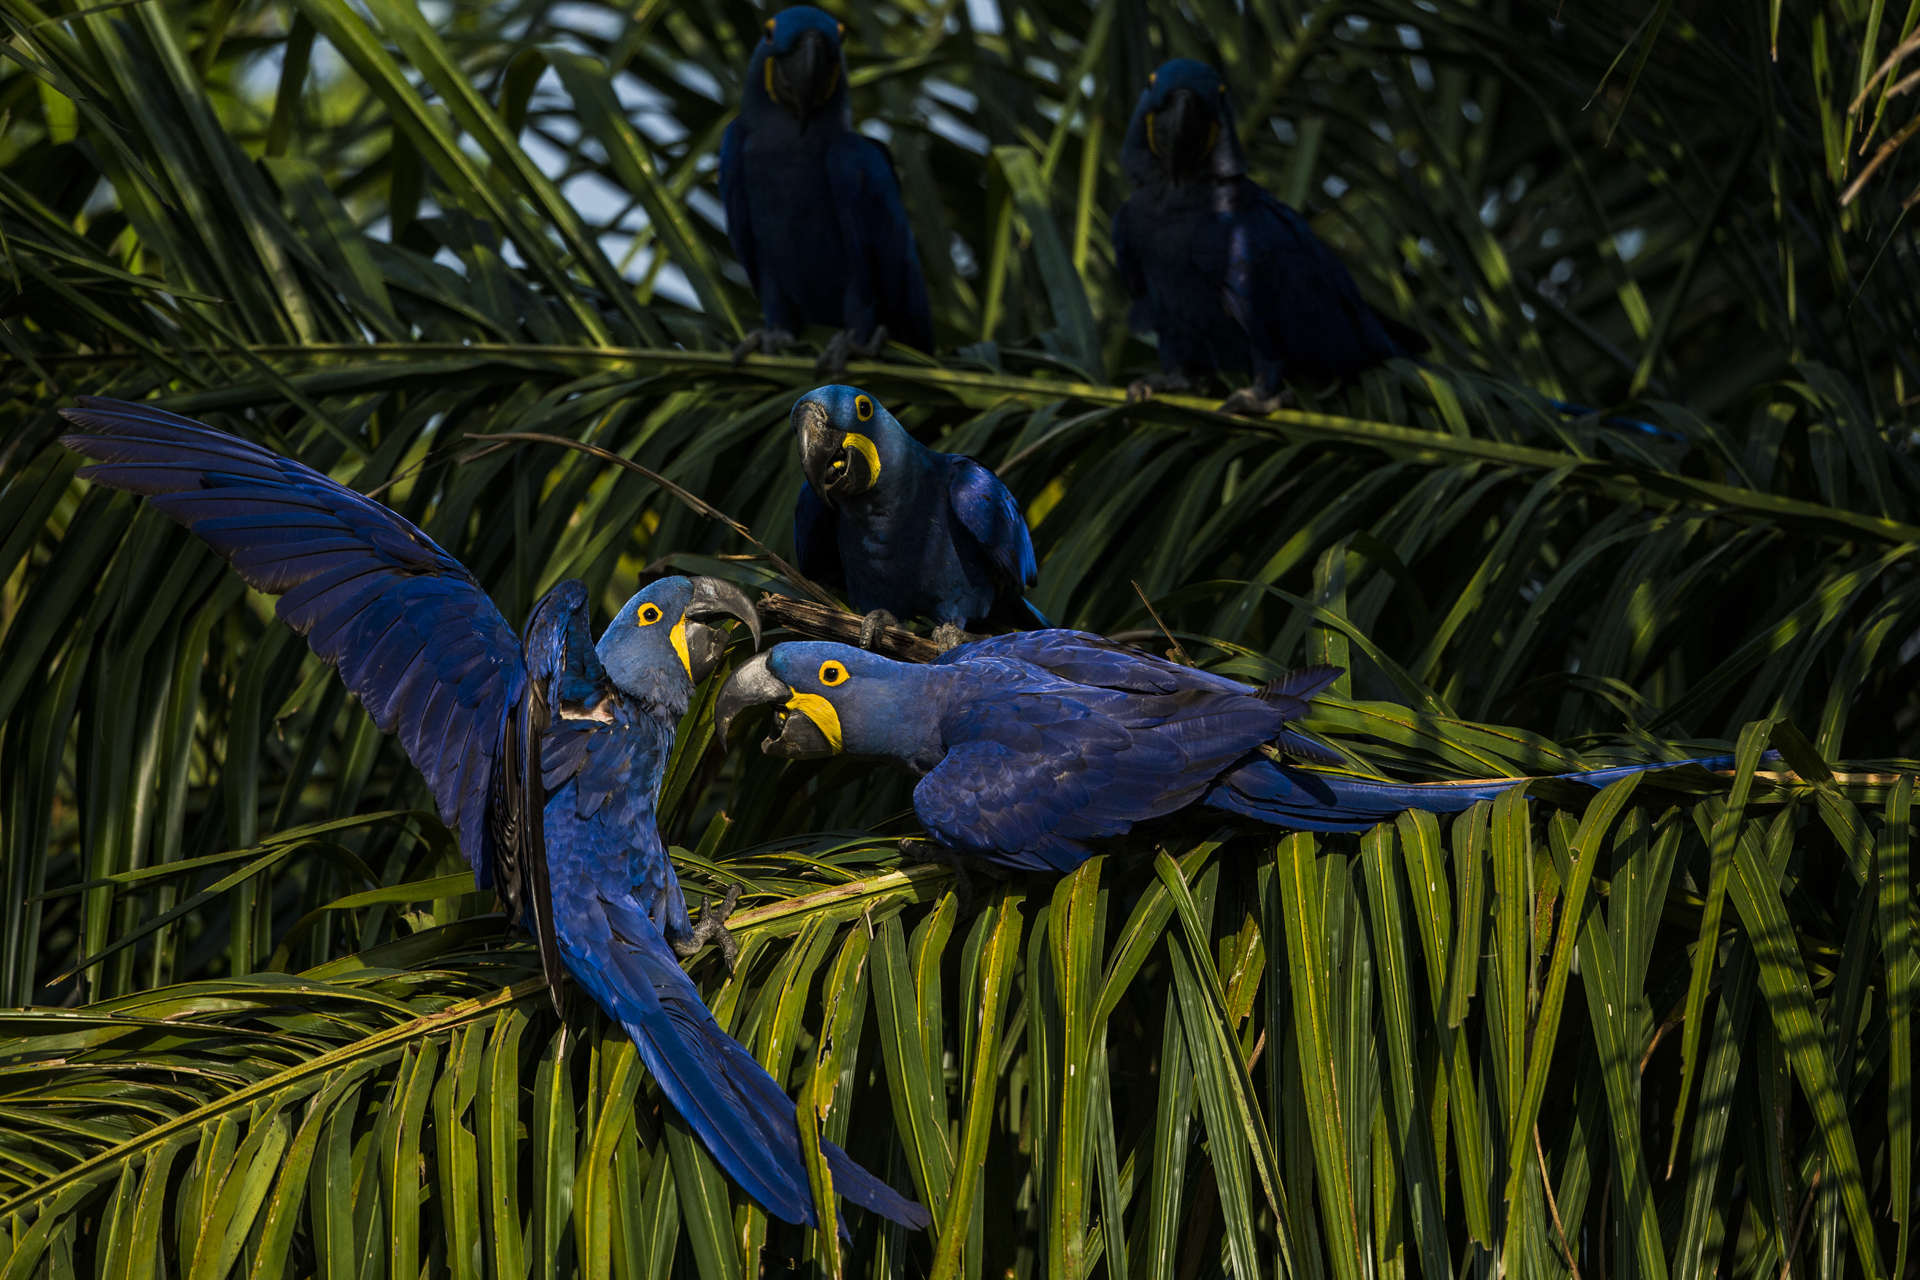 Hyacinth macaws squabble over palm nuts.